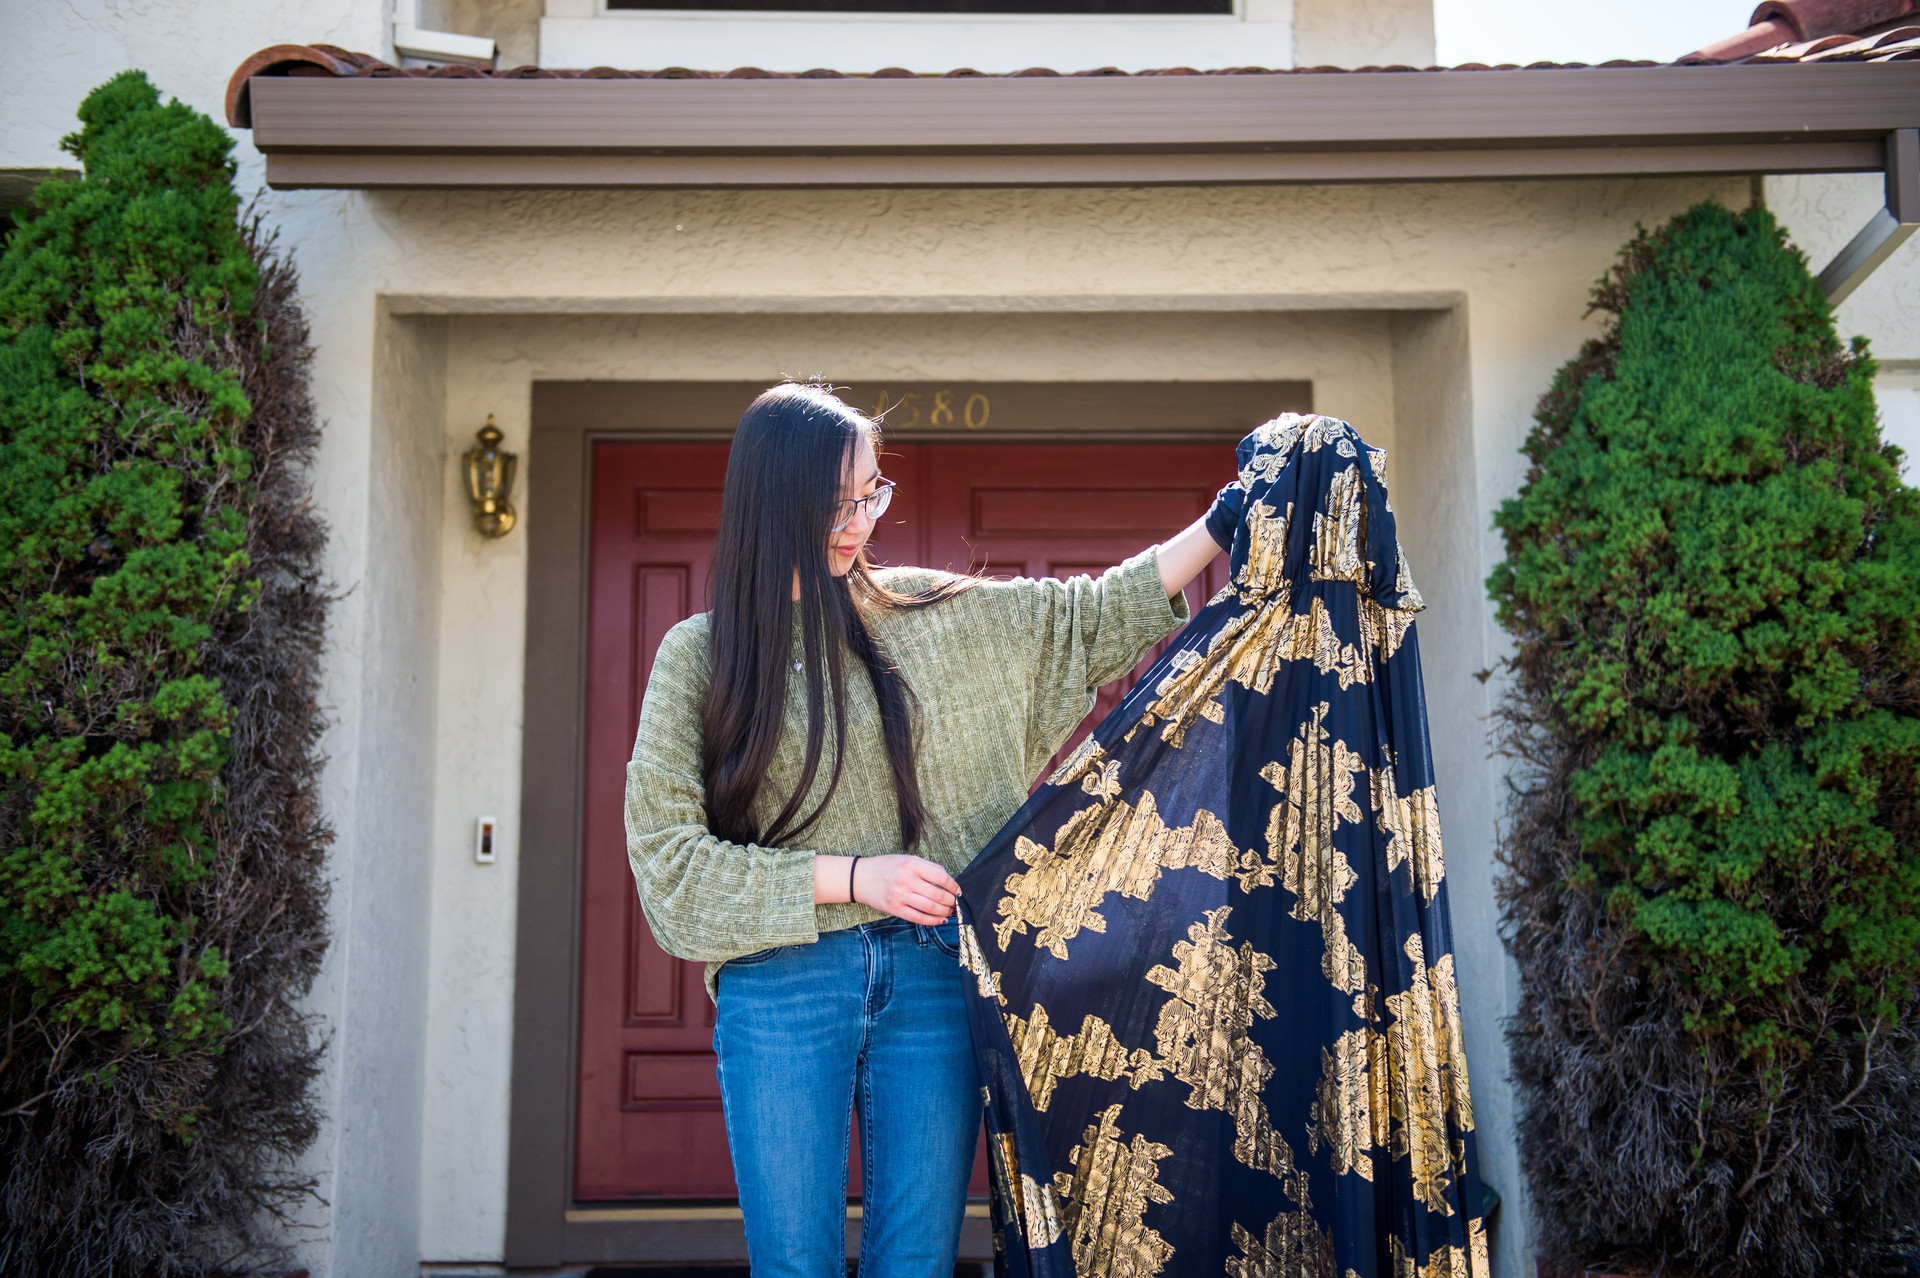 High school senior Taila Lee holds her prom dress at her home in San Carlos on April 4, 2020.